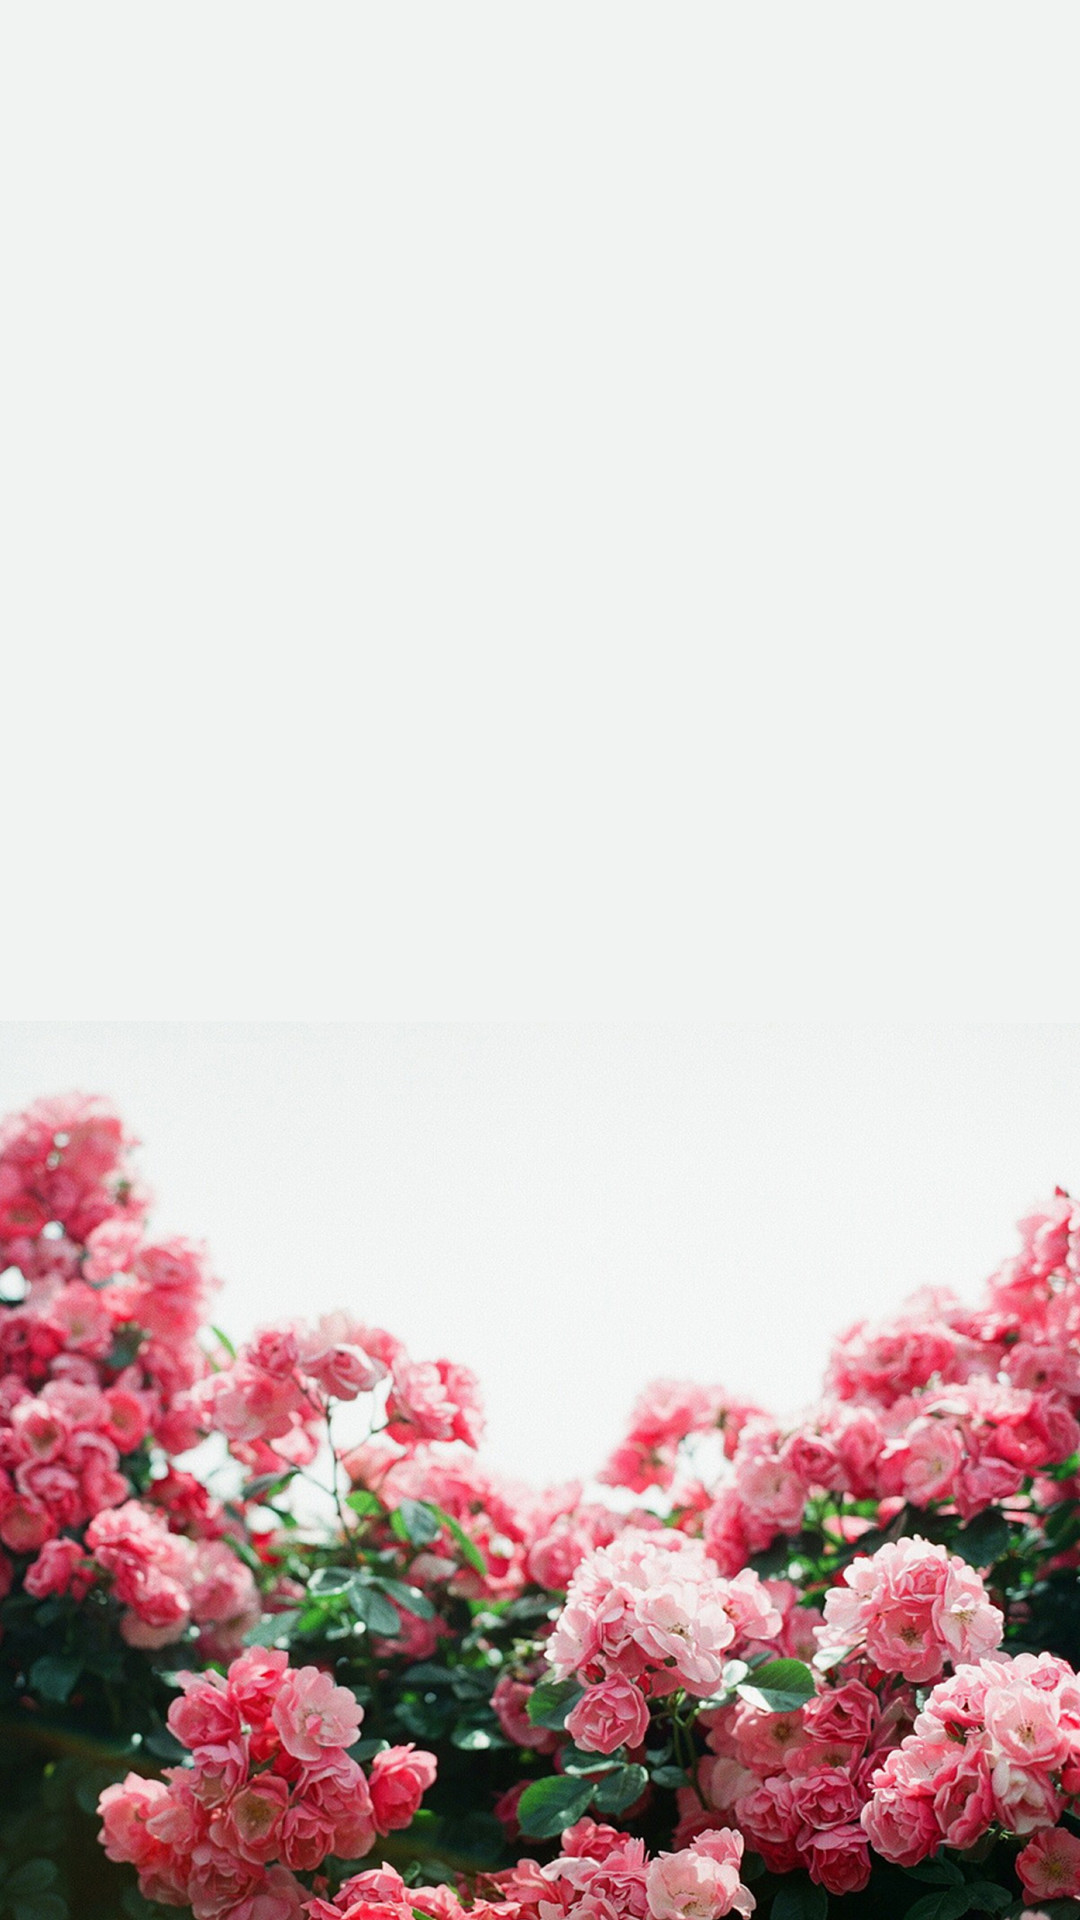 Iphone Wallpapers Tumblr 87 Background Pictures